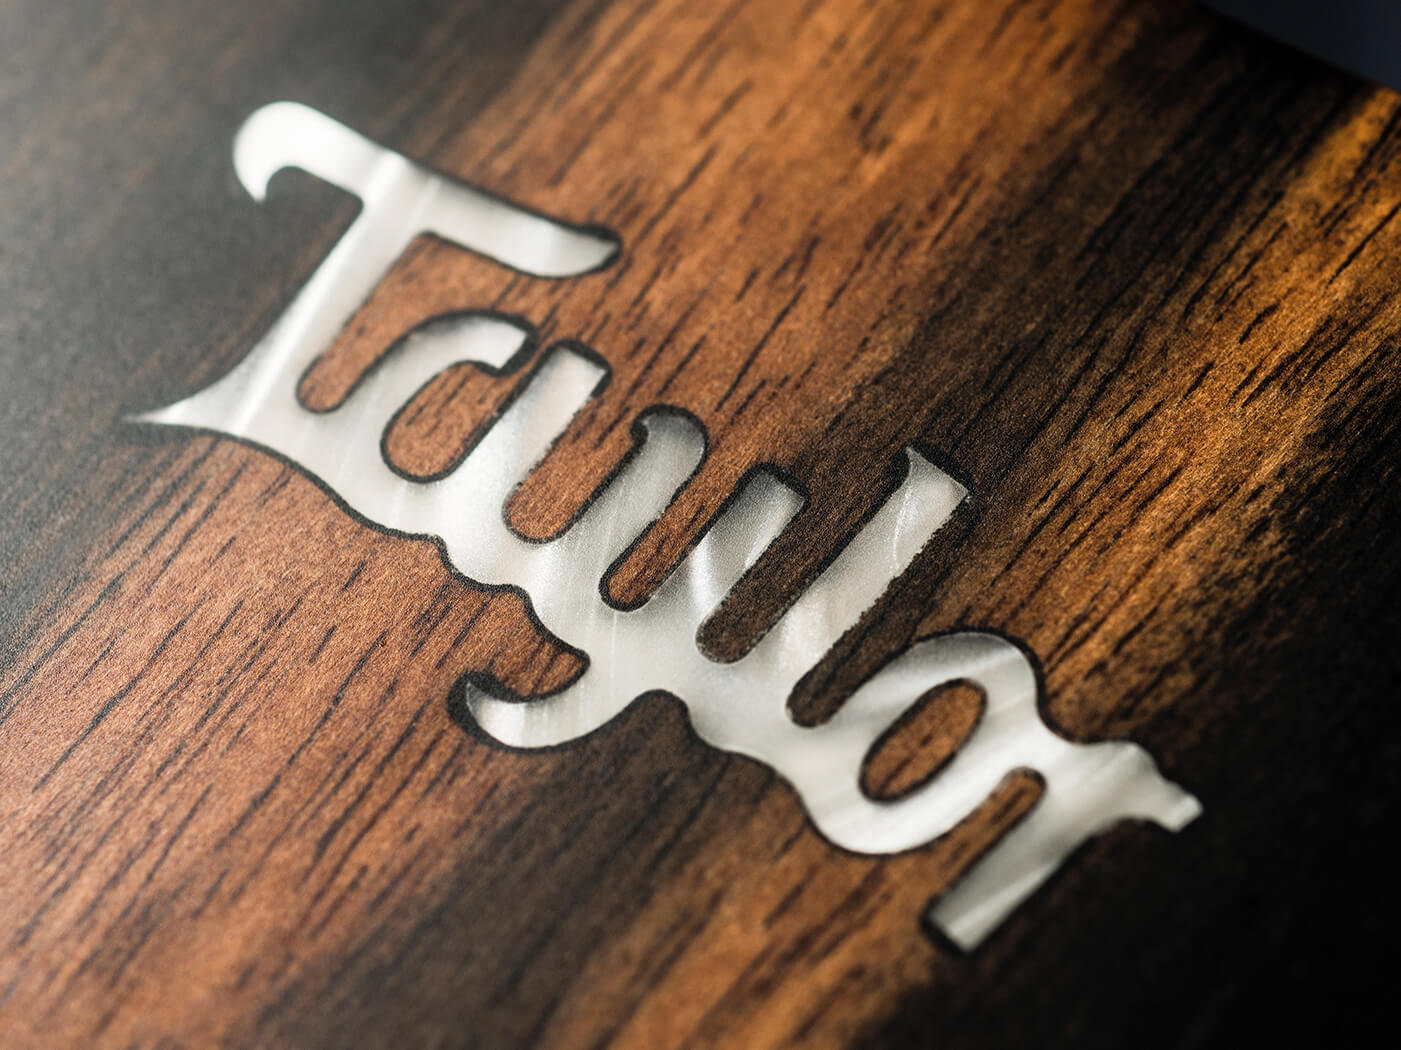 Taylor 322ce headstock engraved logo